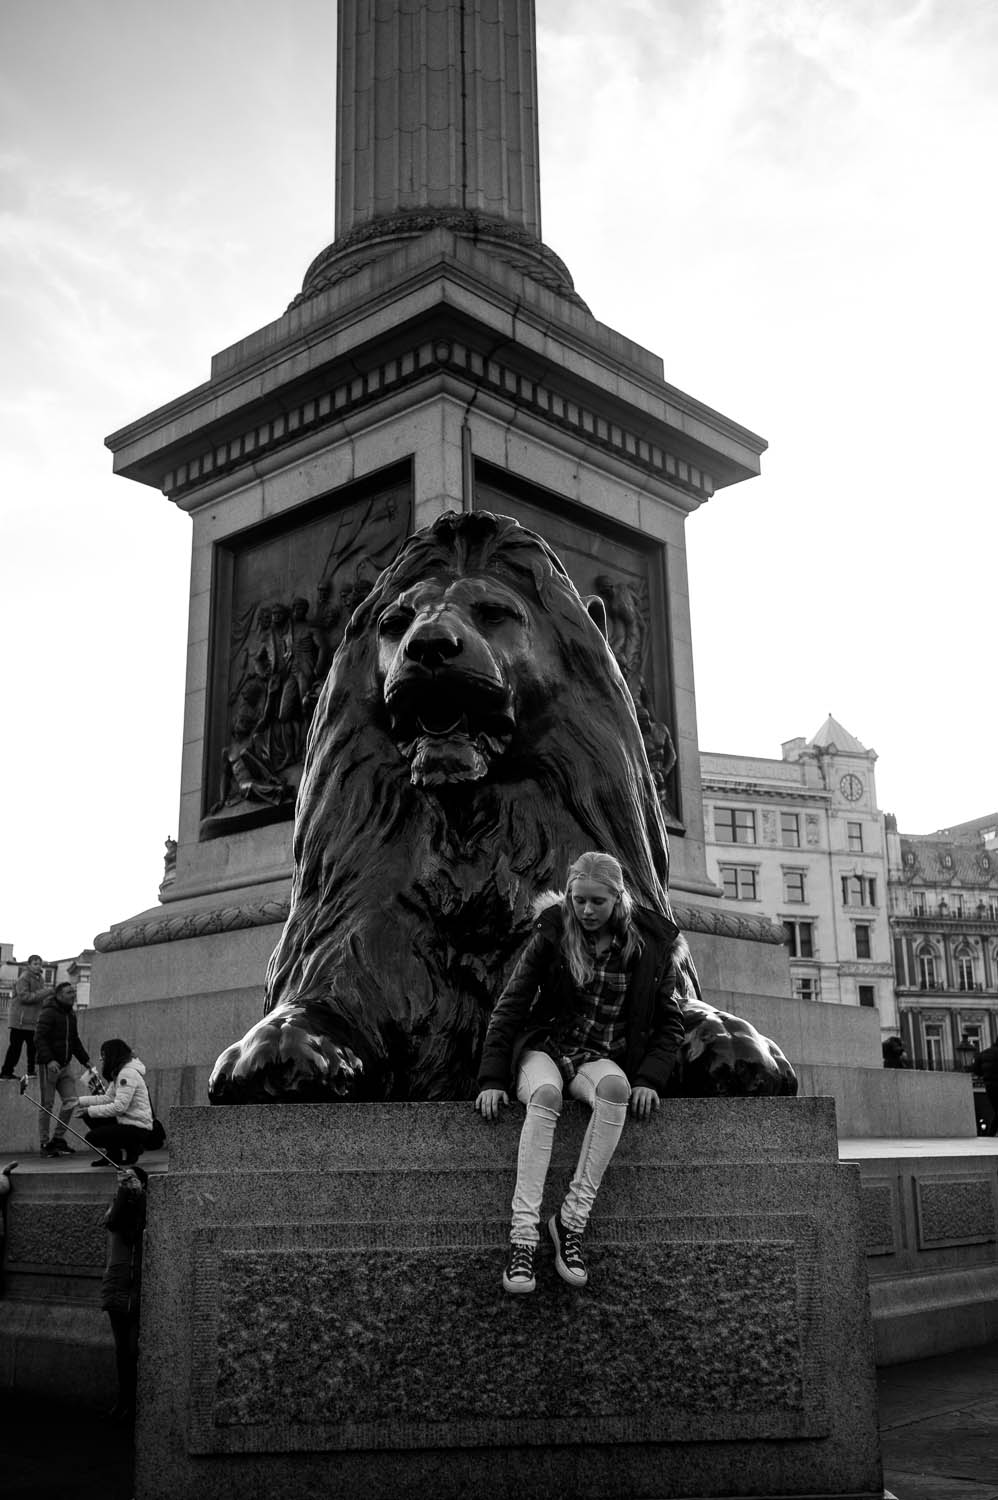 A girl sites in front of a lion statue in London